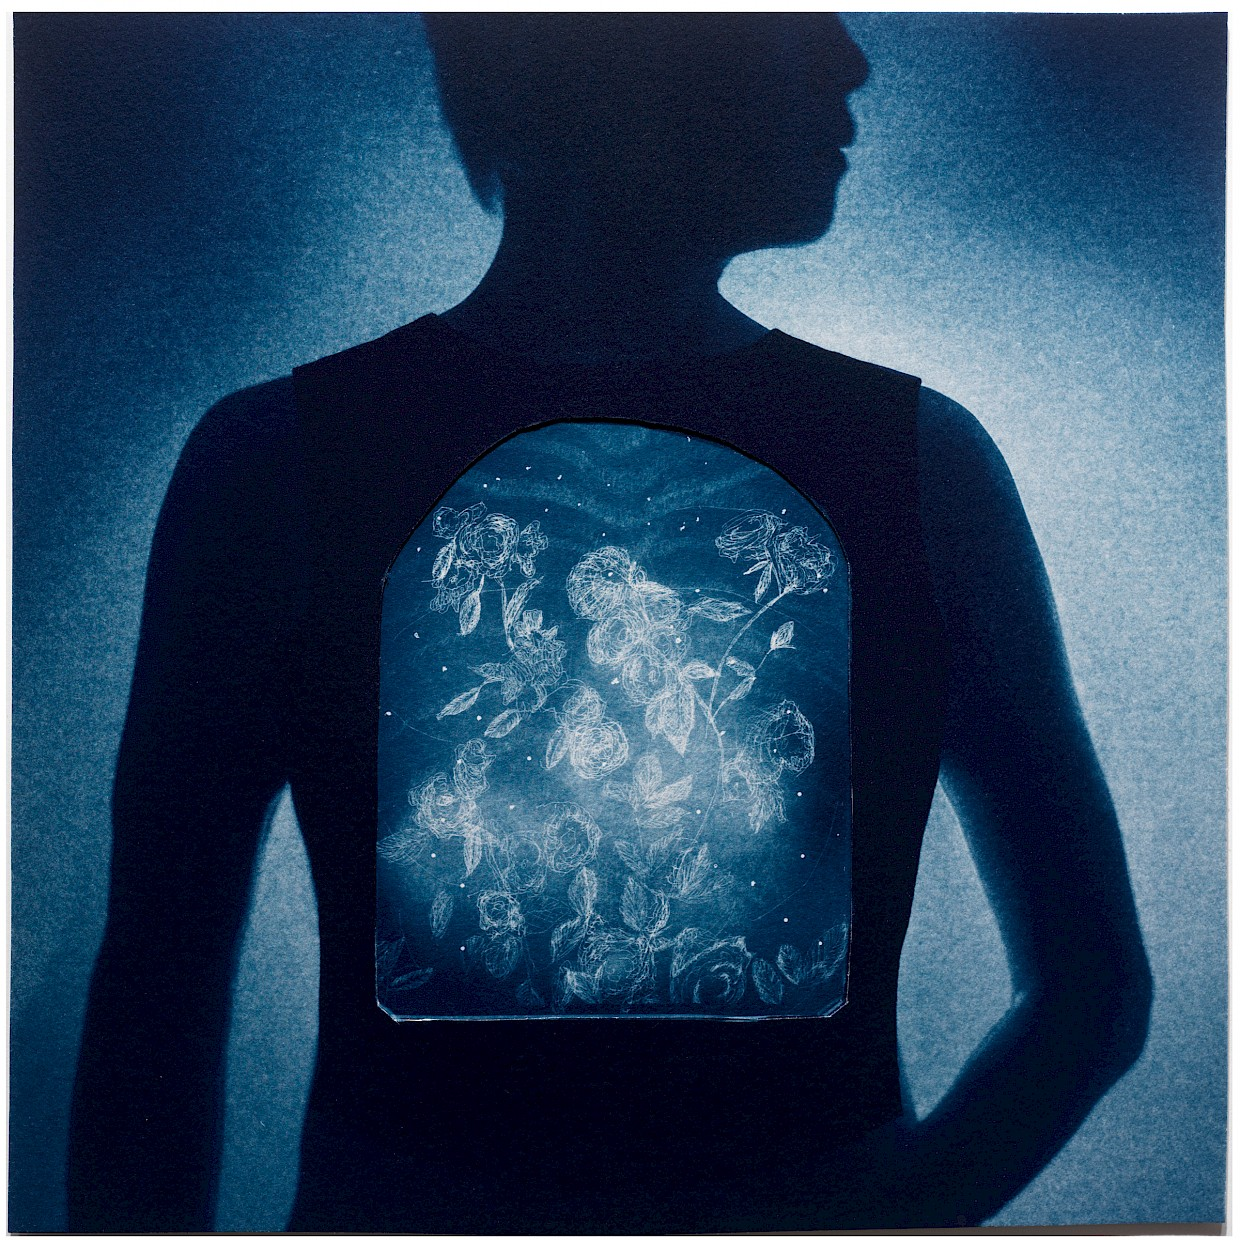 cyanotype print illustration of x-ray of man's interior chest with flowers surreal